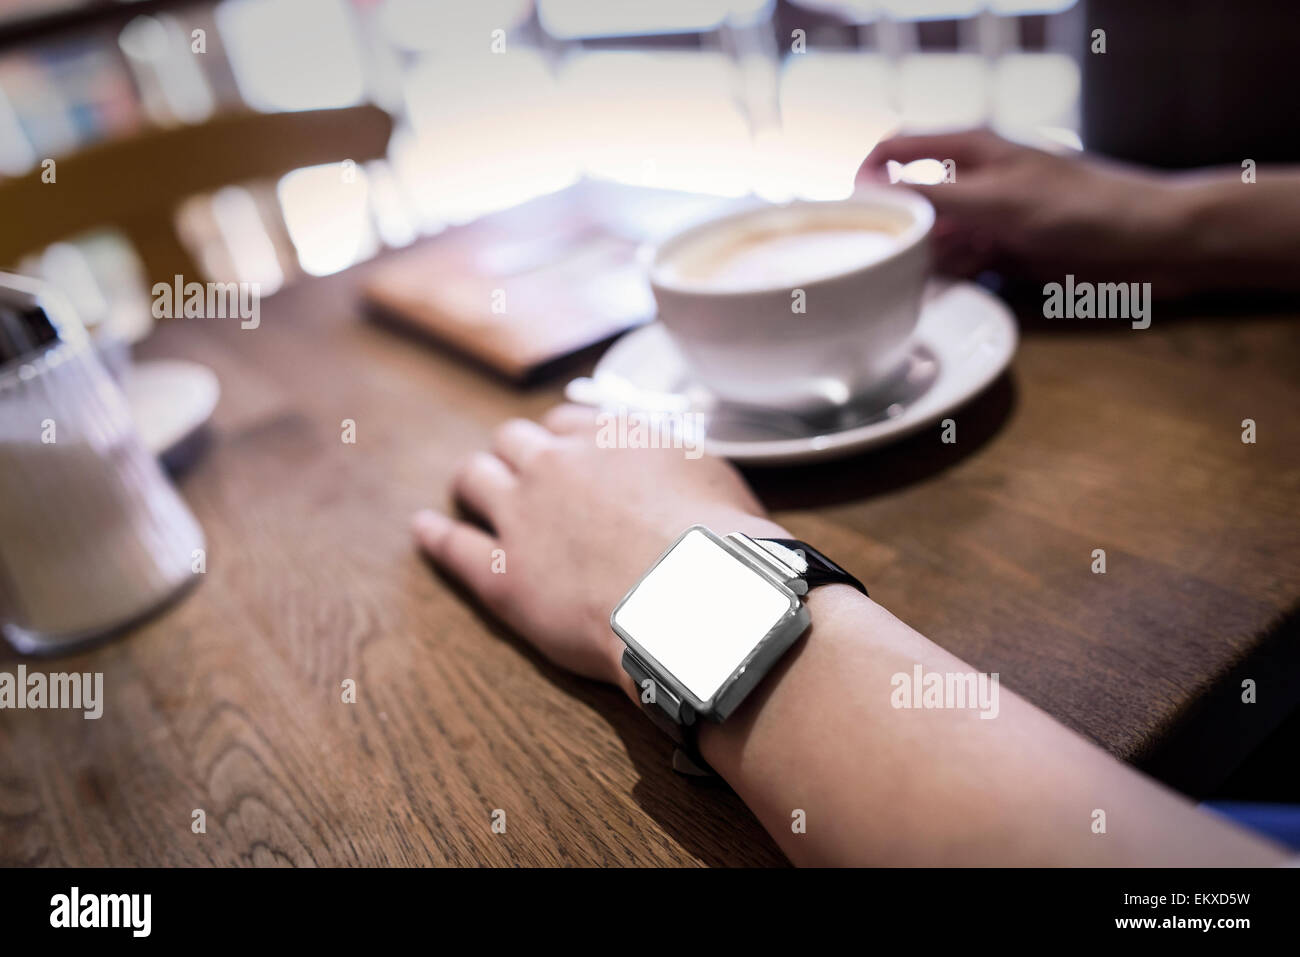 In coffee bar a woman using her smartwatch. - Stock Image